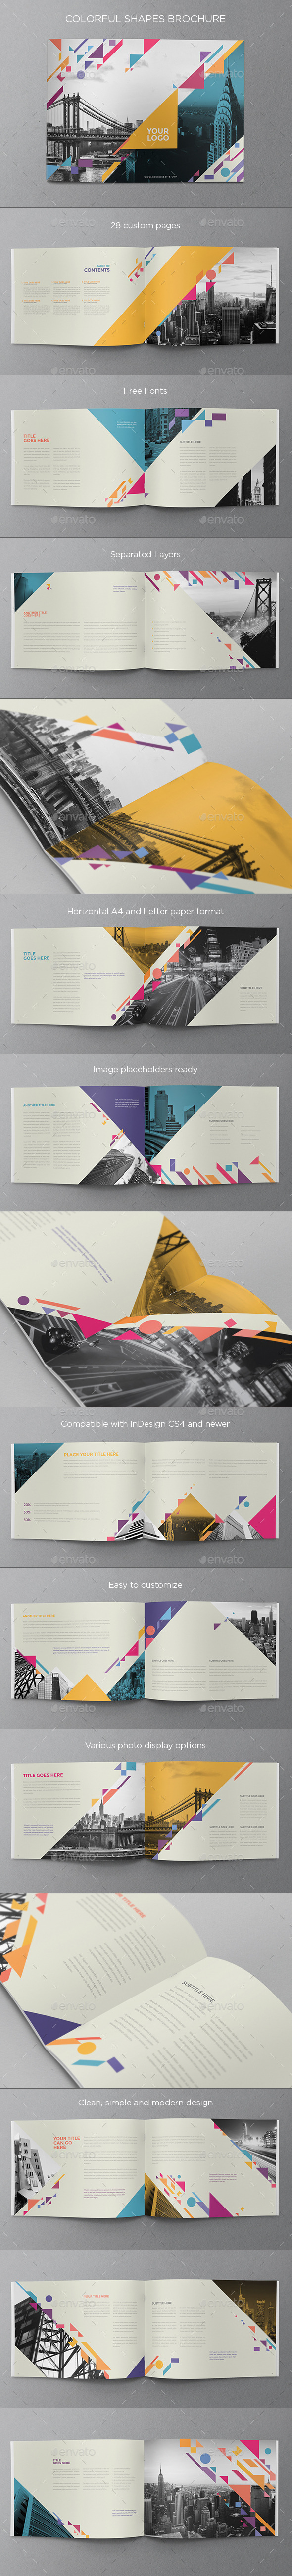 Colorful Shapes Brochure - Brochures Print Templates